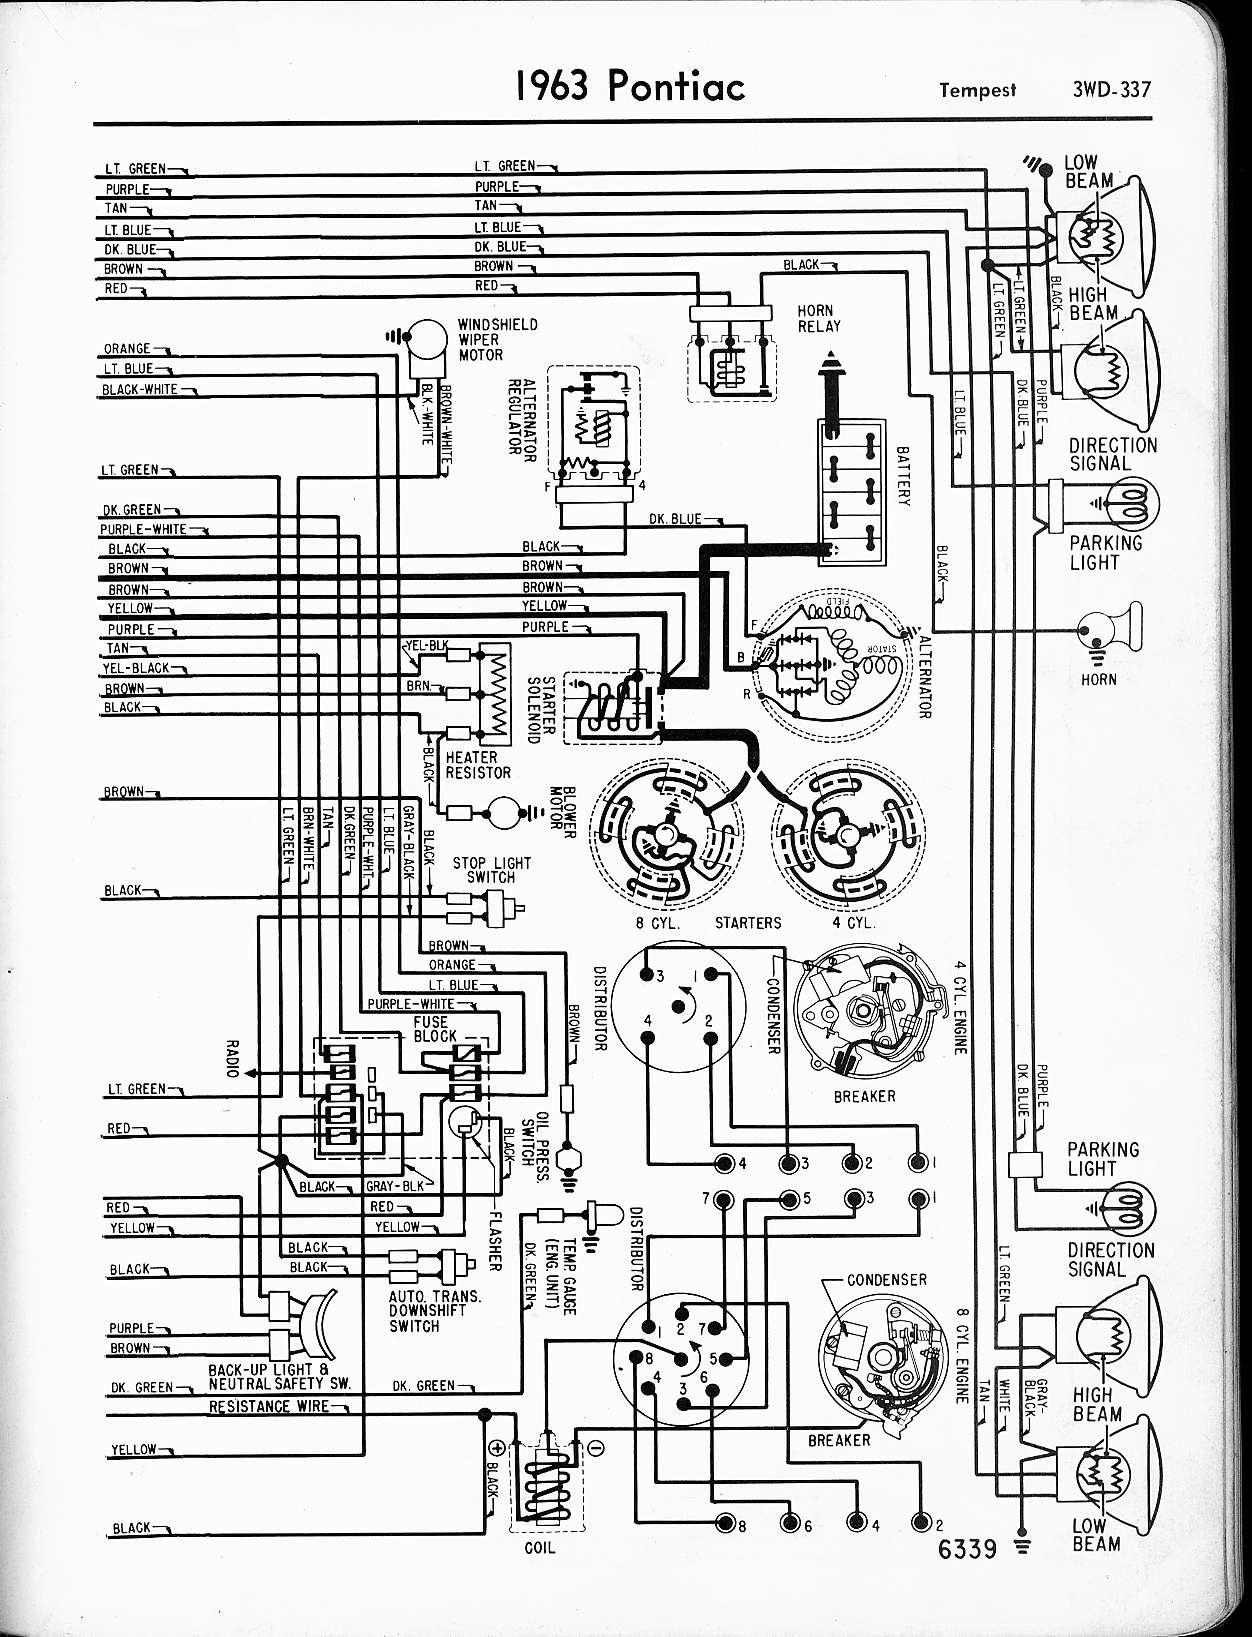 hight resolution of 1972 gto wiring diagram wiring diagram used 1972 pontiac gto wiring diagram 1972 gto wiring diagram